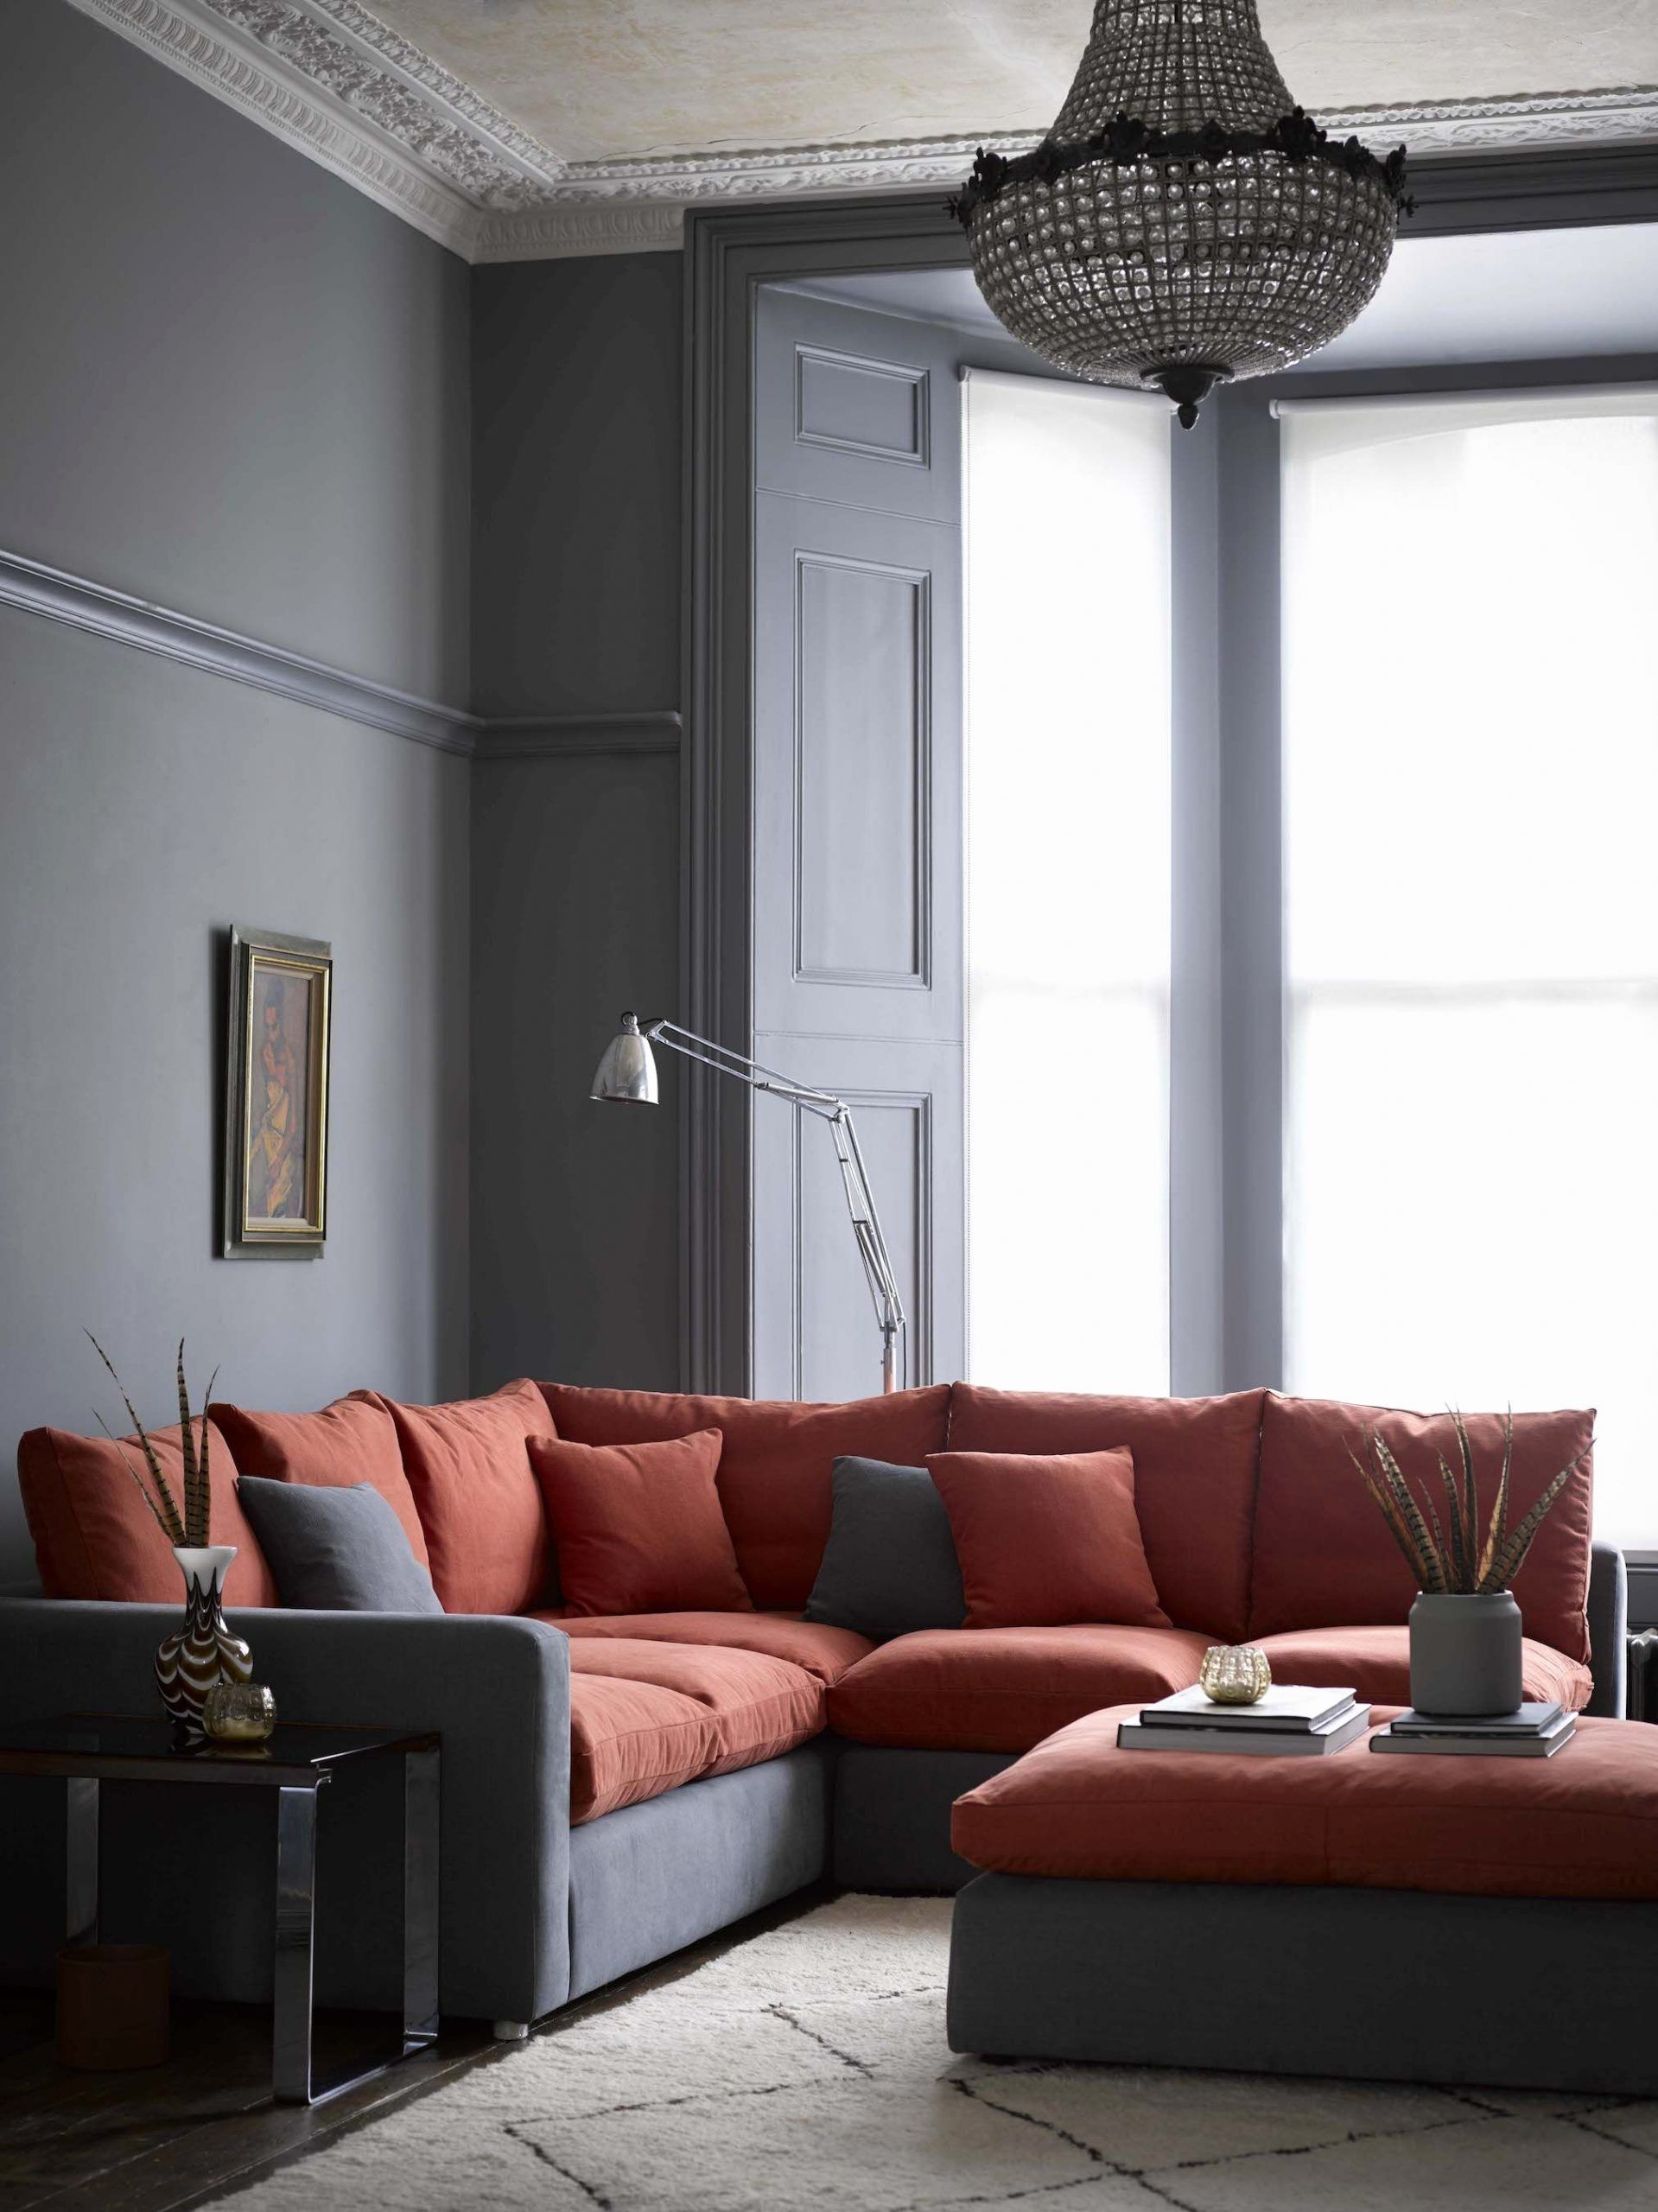 Living Room Couch Ideas Luxury 19 Grey Living Room Ideas Grey Living Room In 2020 Living Room Grey Grey Sofa Living Room Gray Sofa Living